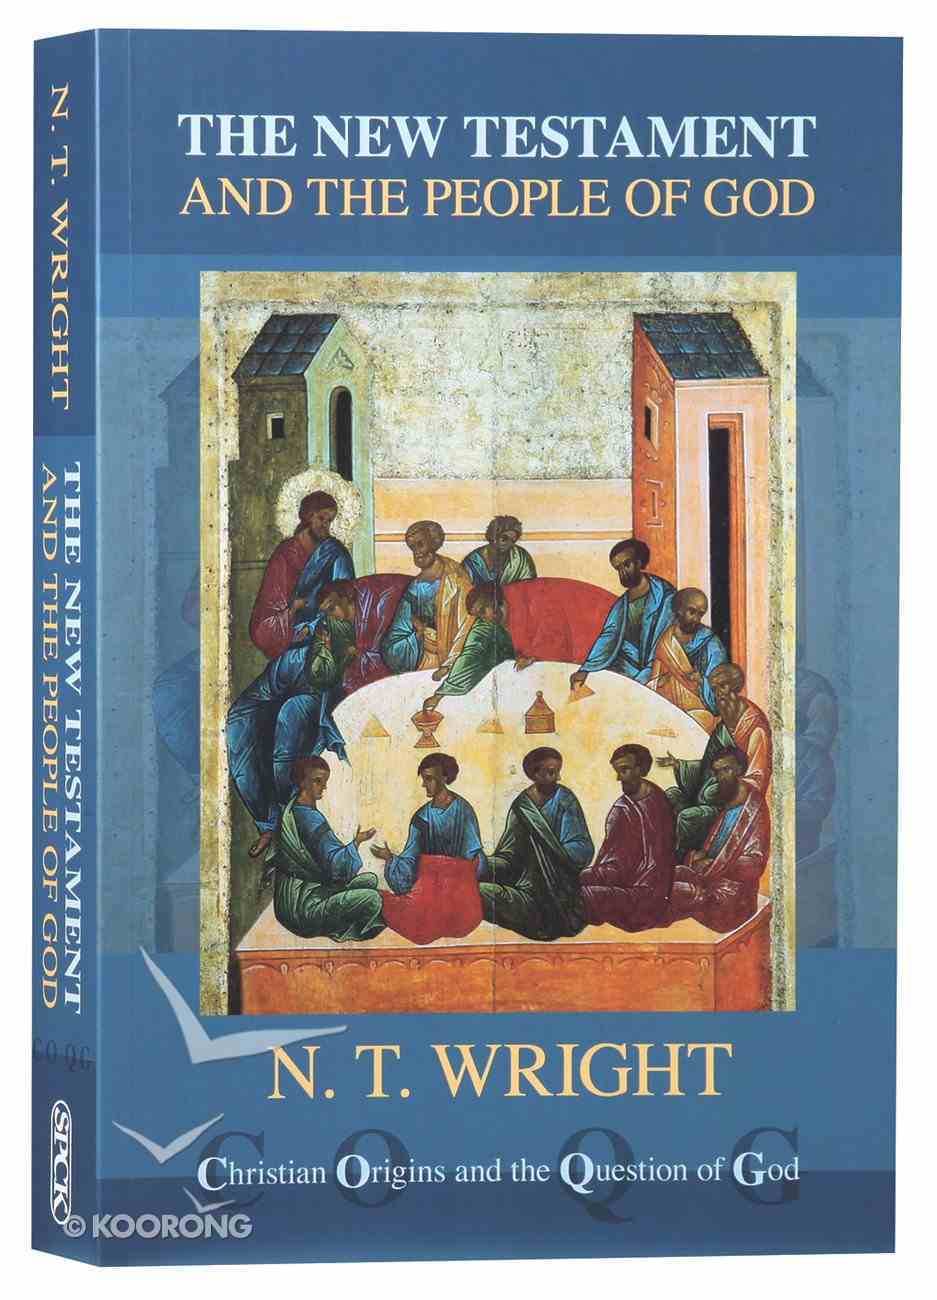 The New Testament and the People of God (Reformatted 2013) (#1 in Christian Origins And The Question Of God Series) Paperback